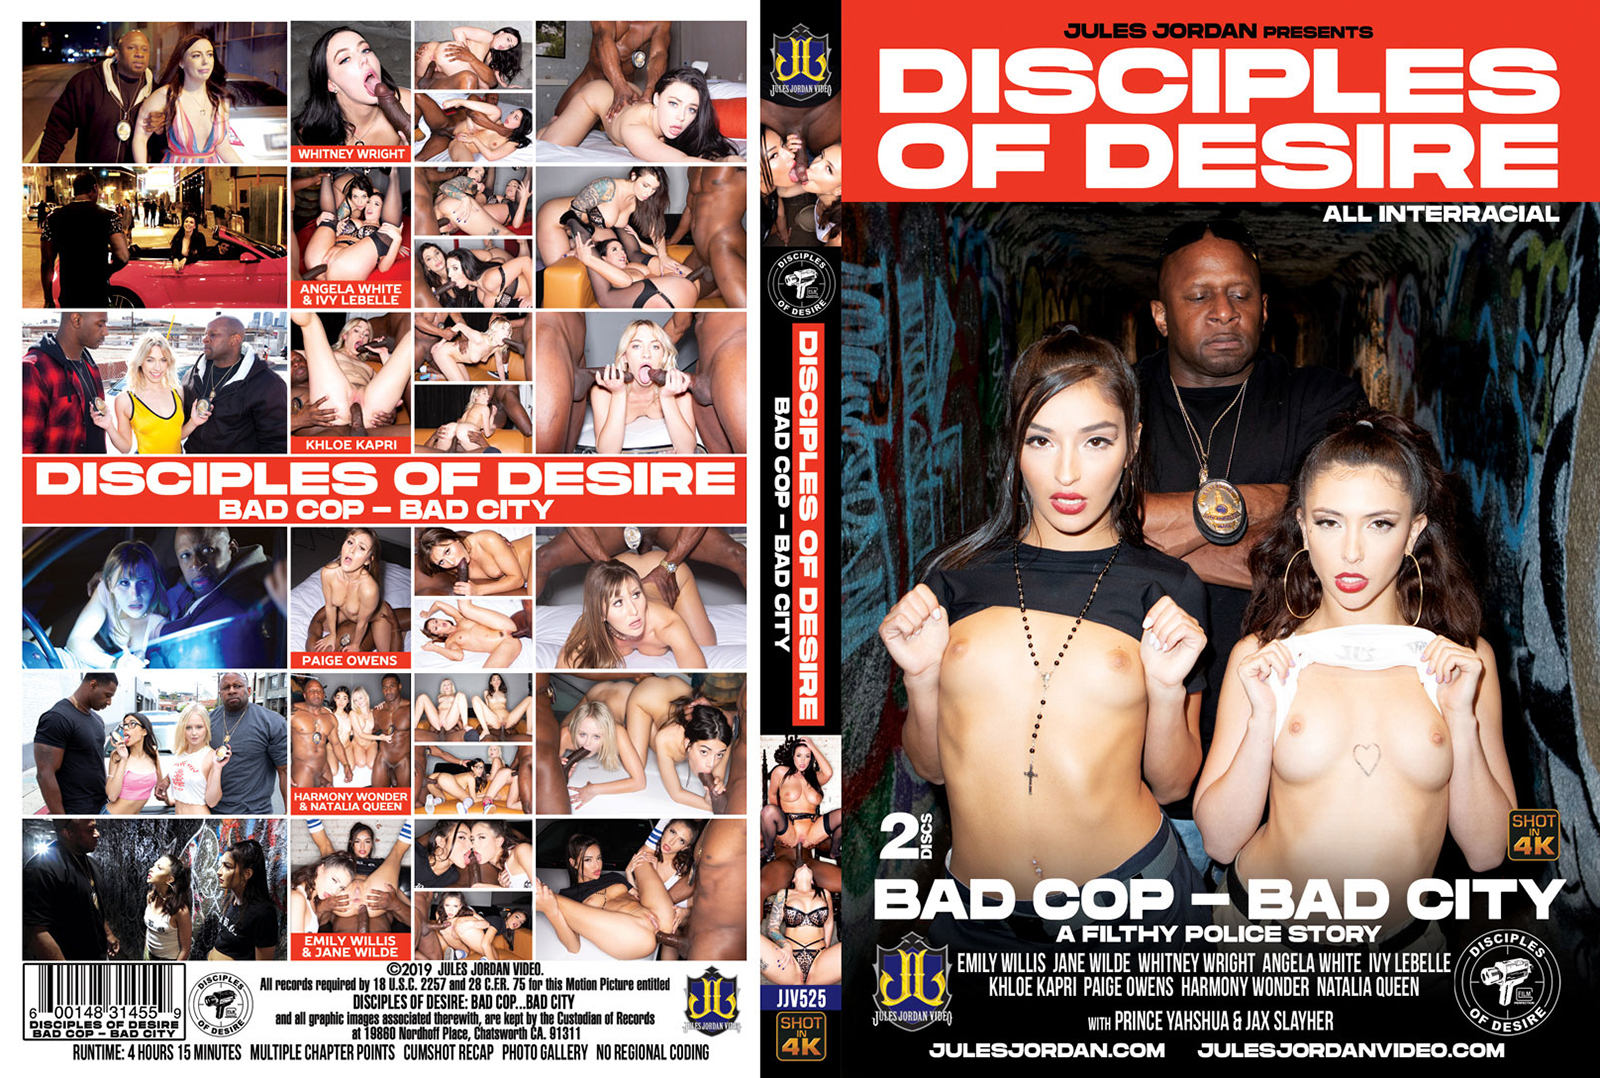 Bad Cop Bad City DVD